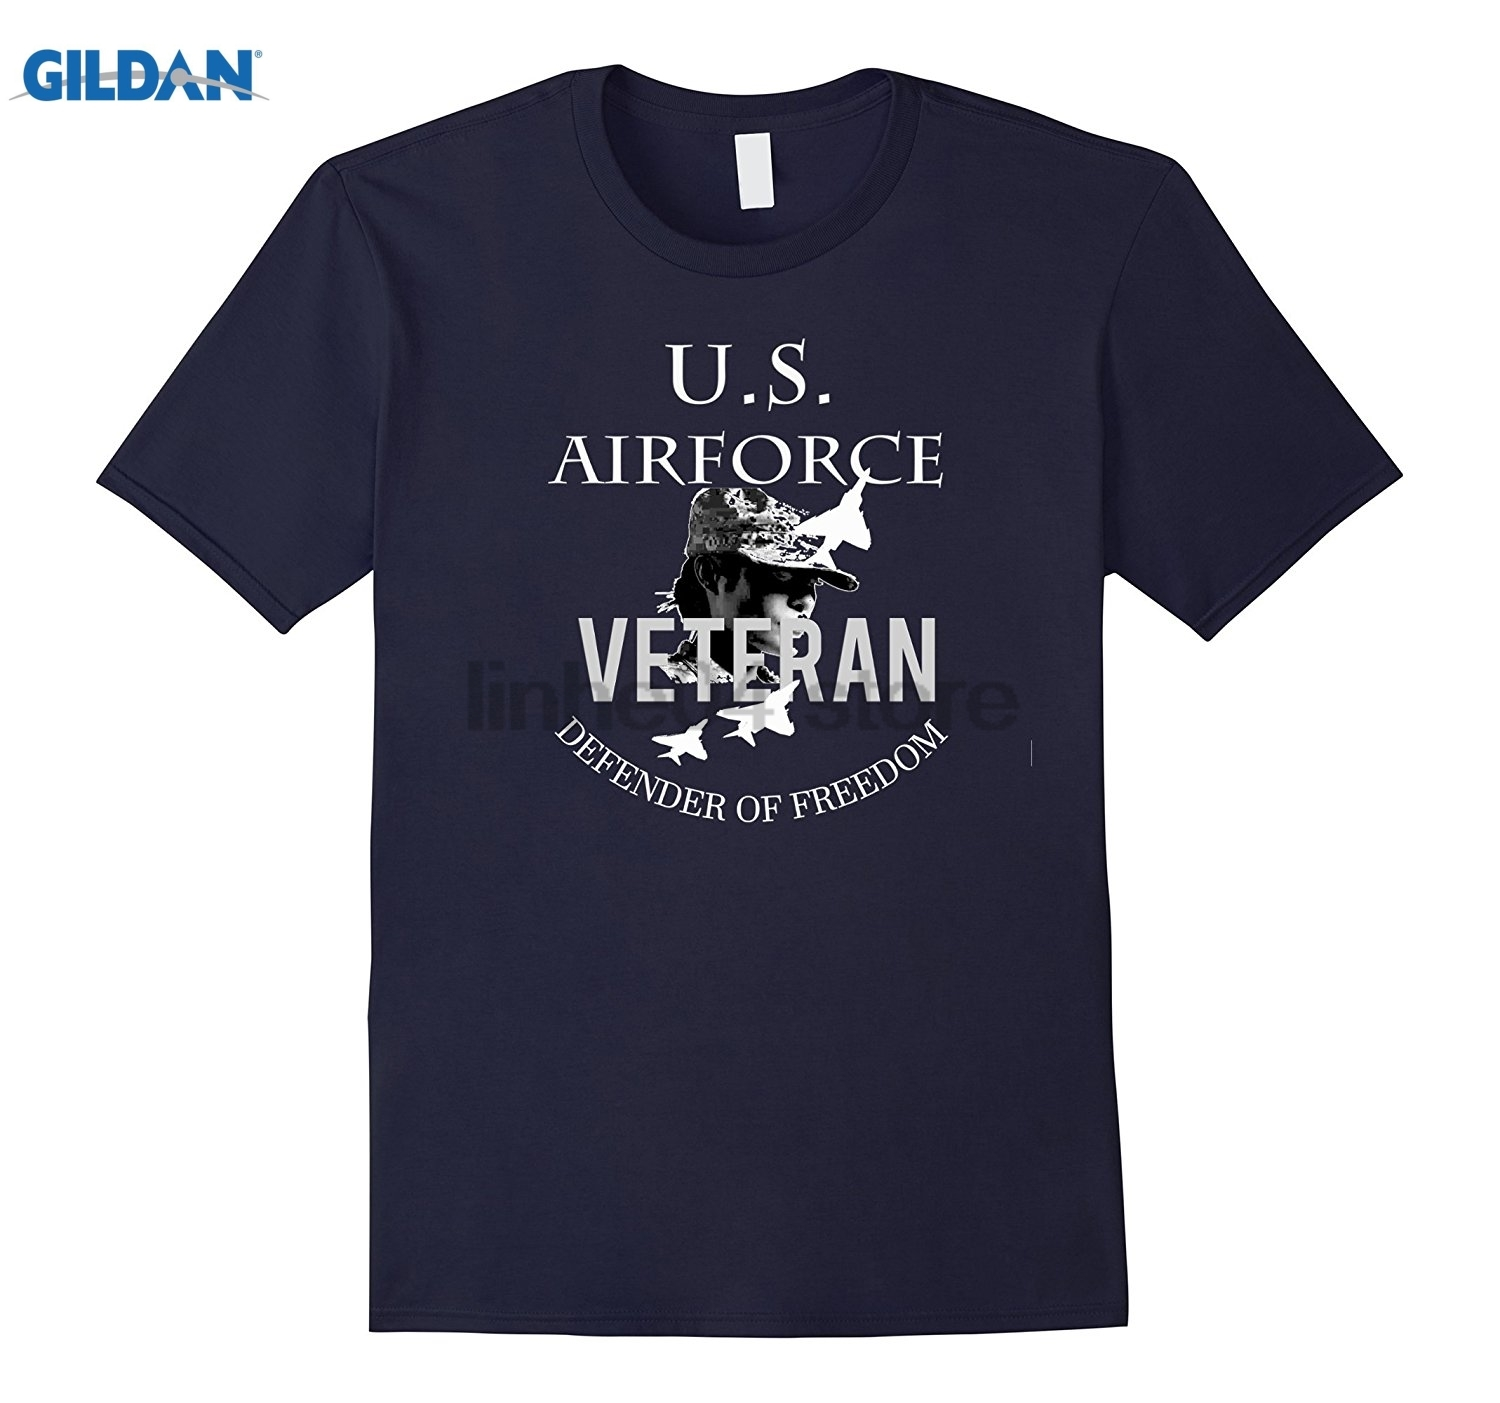 GILDAN T-Shirt - U.S Airforce Veterans Dress female T-shirt Mothers Day Ms. T-shirt